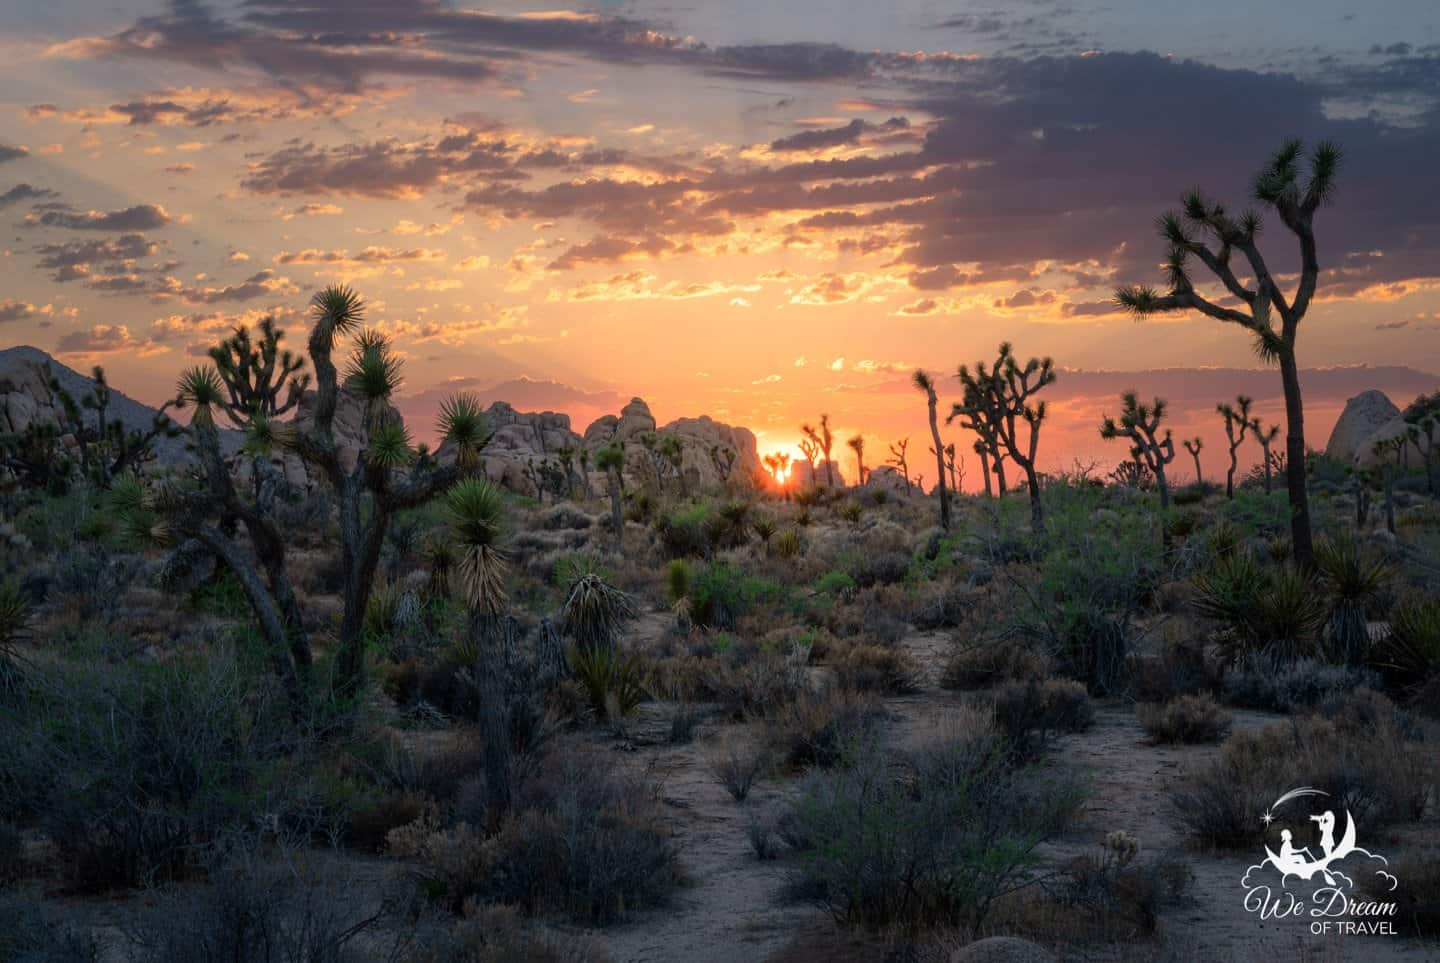 A sunset picture of Hidden Valley. the best and most popular spot for sunset in Joshua Tree NP.